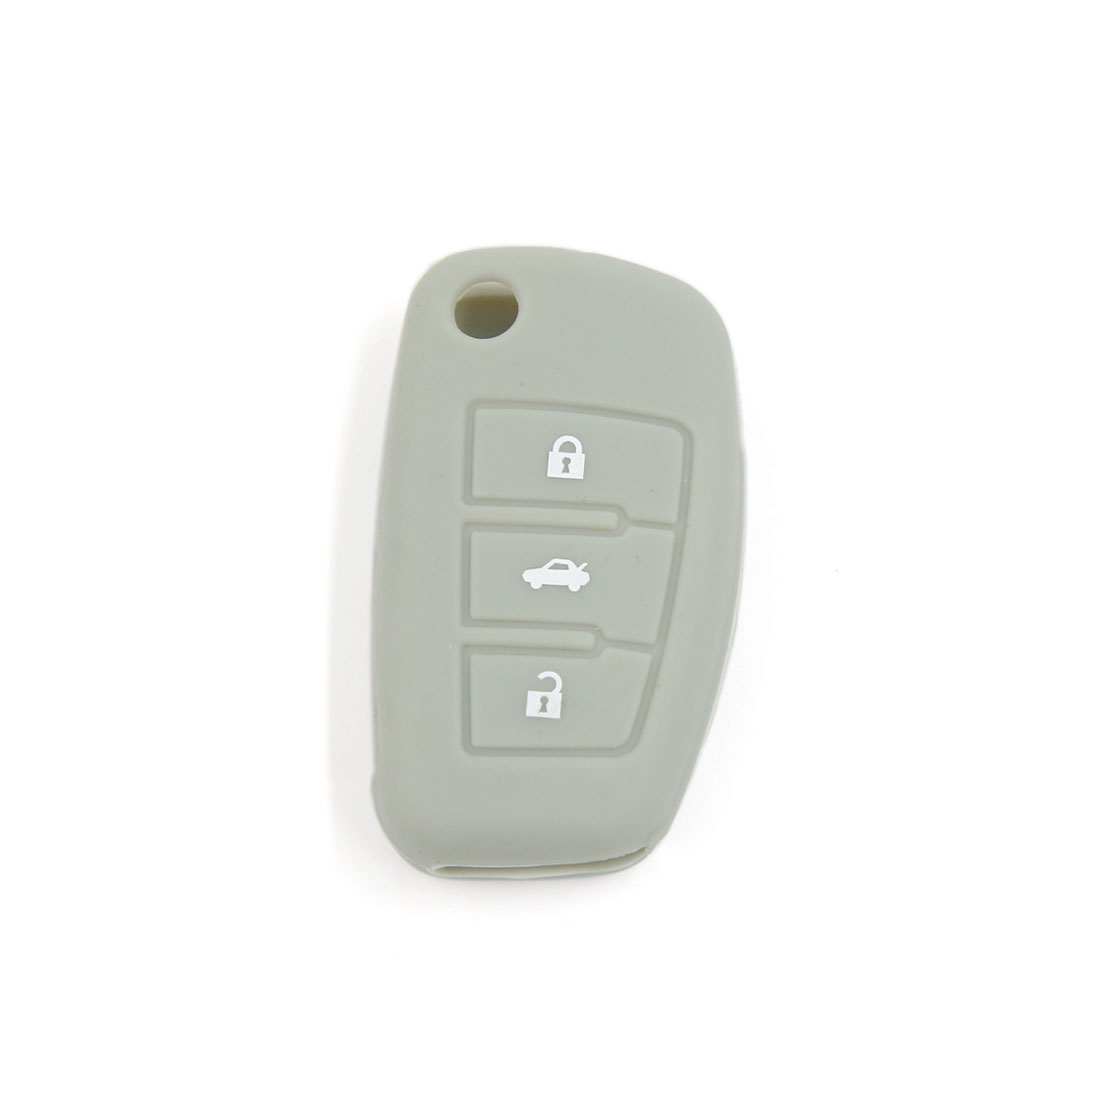 Gray Silicone Remote Fob Key Cover 3 Button for Audi A6L Q7 TT R8 A3 A4L 2009